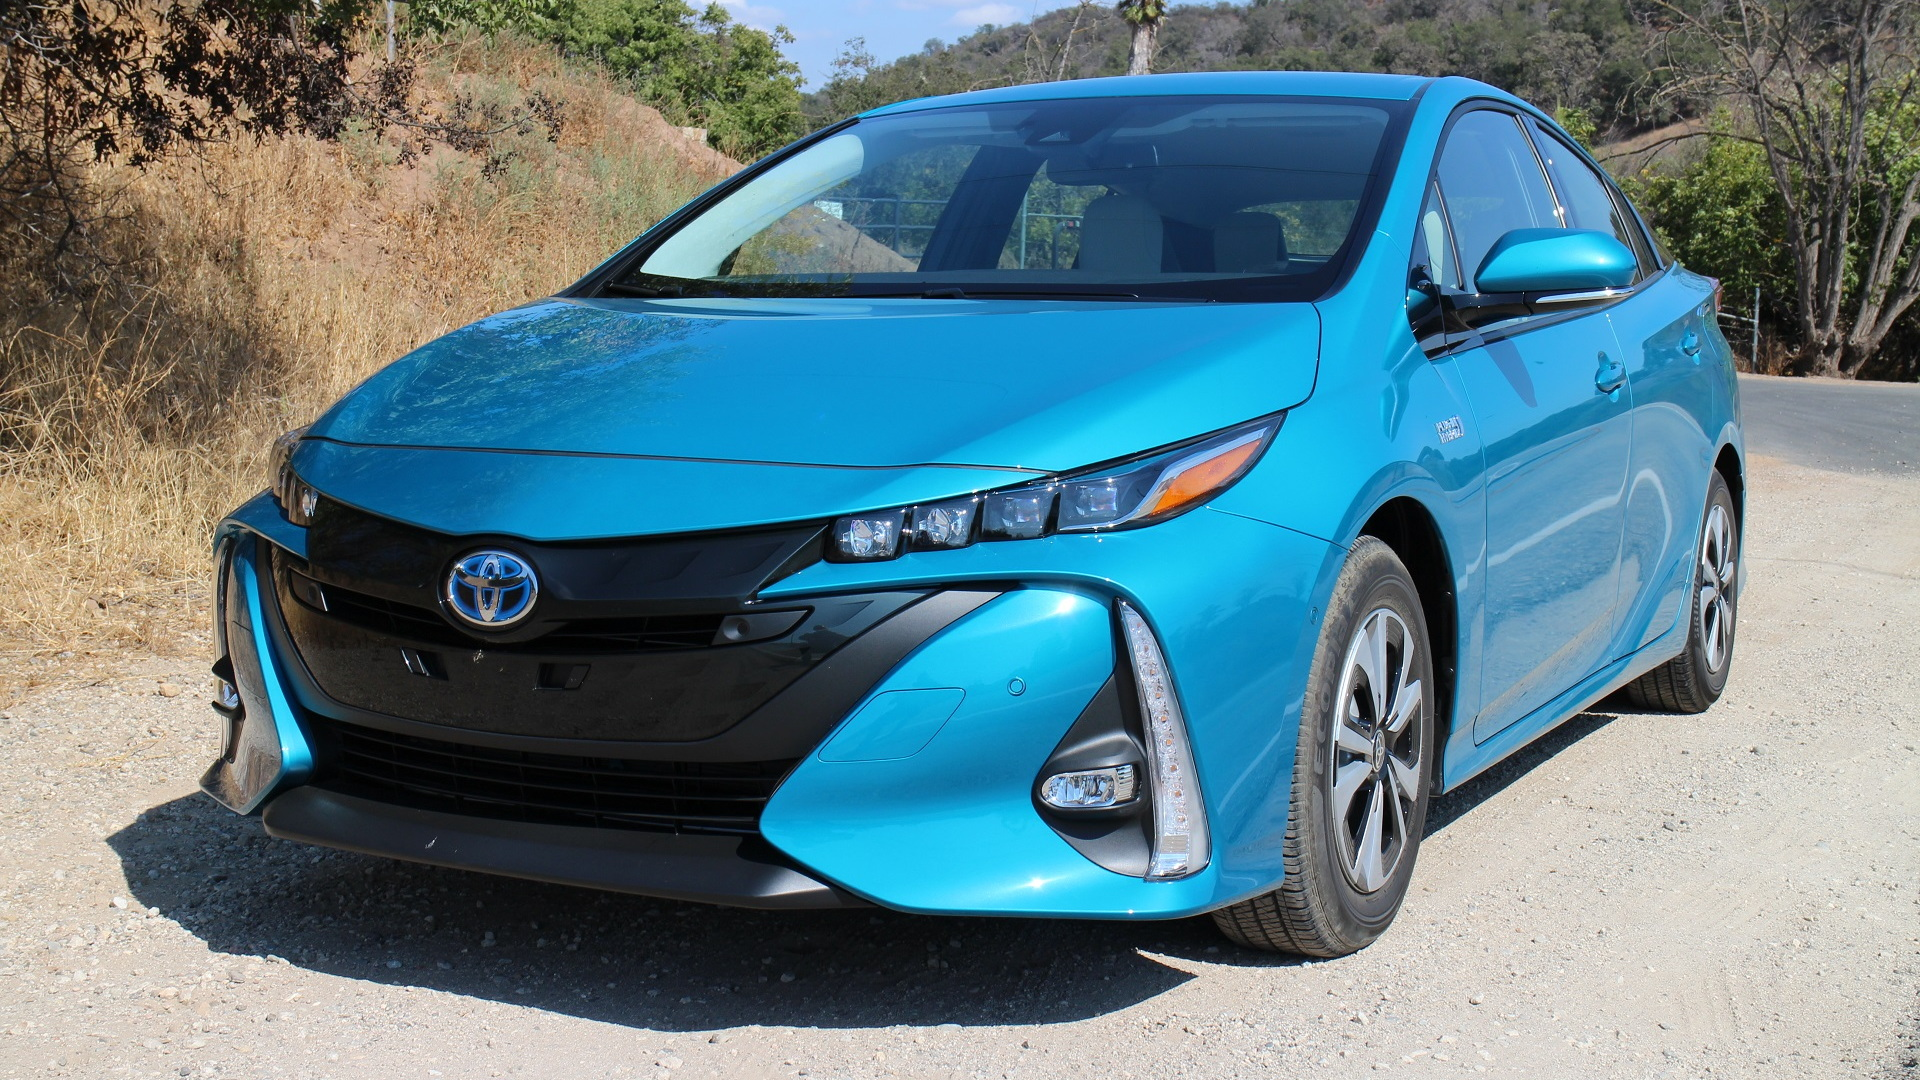 2017 Toyota Prius Prime test drive, Ojai, California, Sep 2016